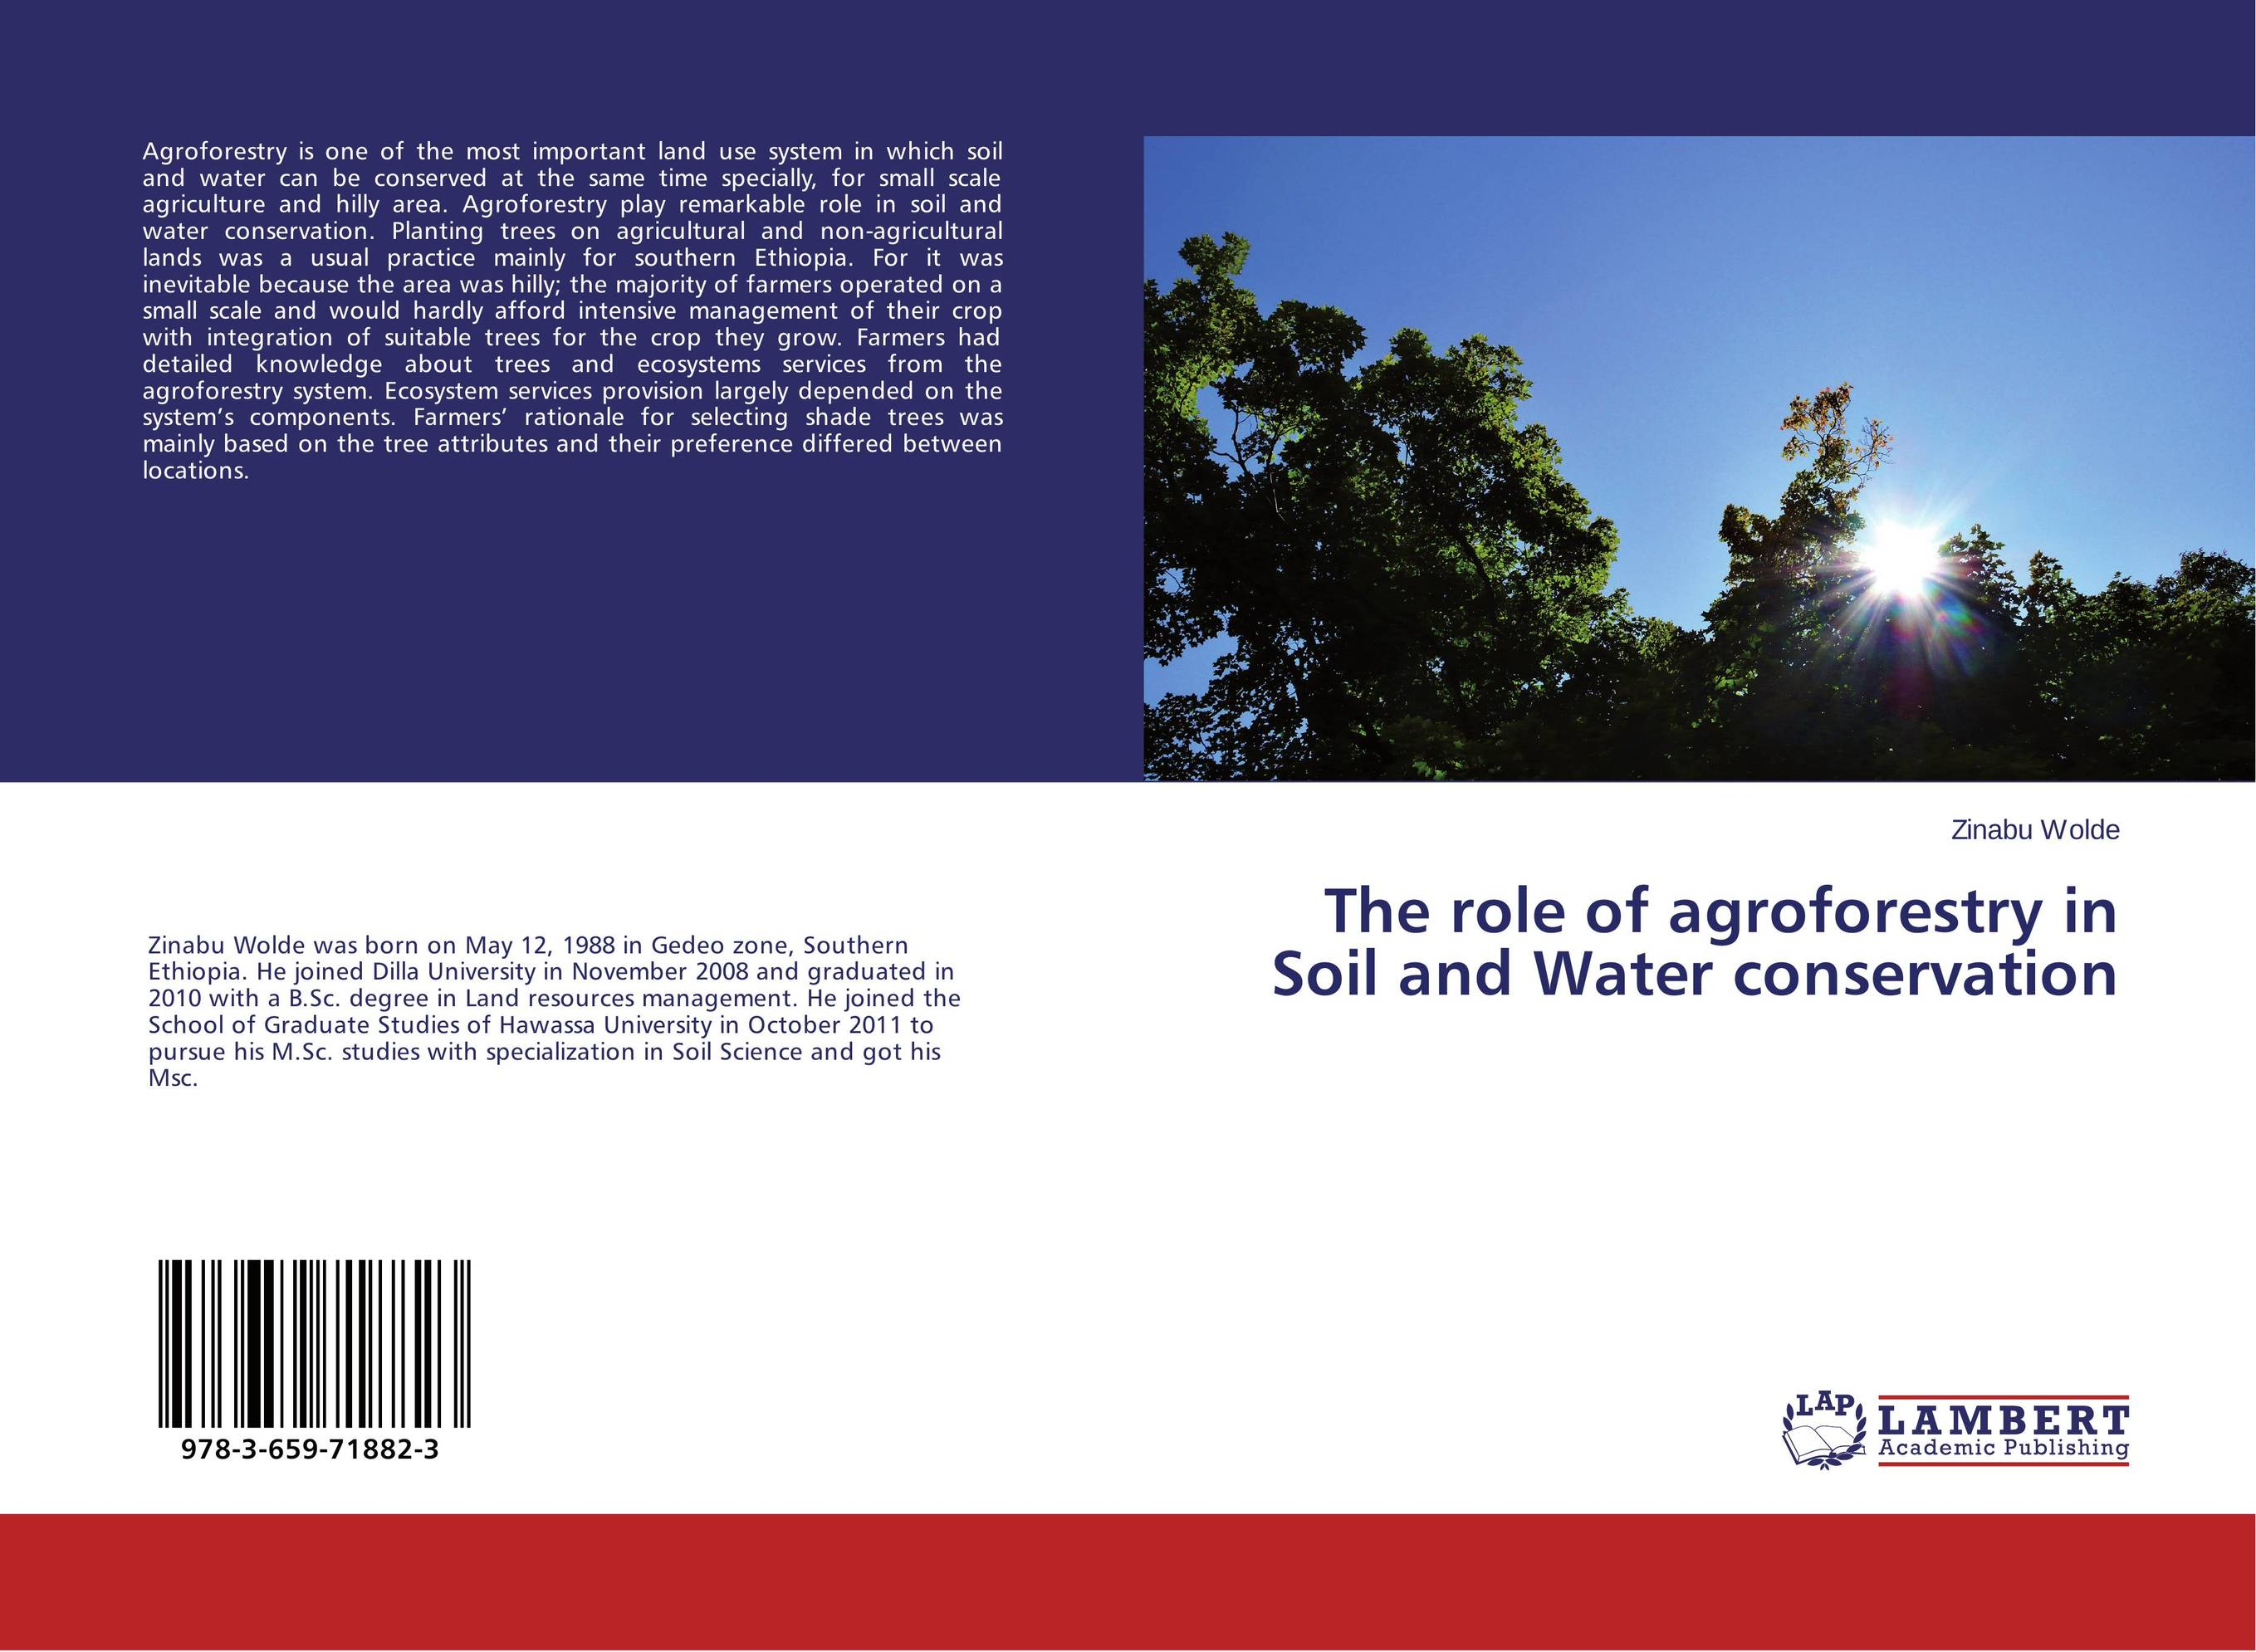 The role of agroforestry in Soil and Water conservation the role of evaluation as a mechanism for advancing principal practice